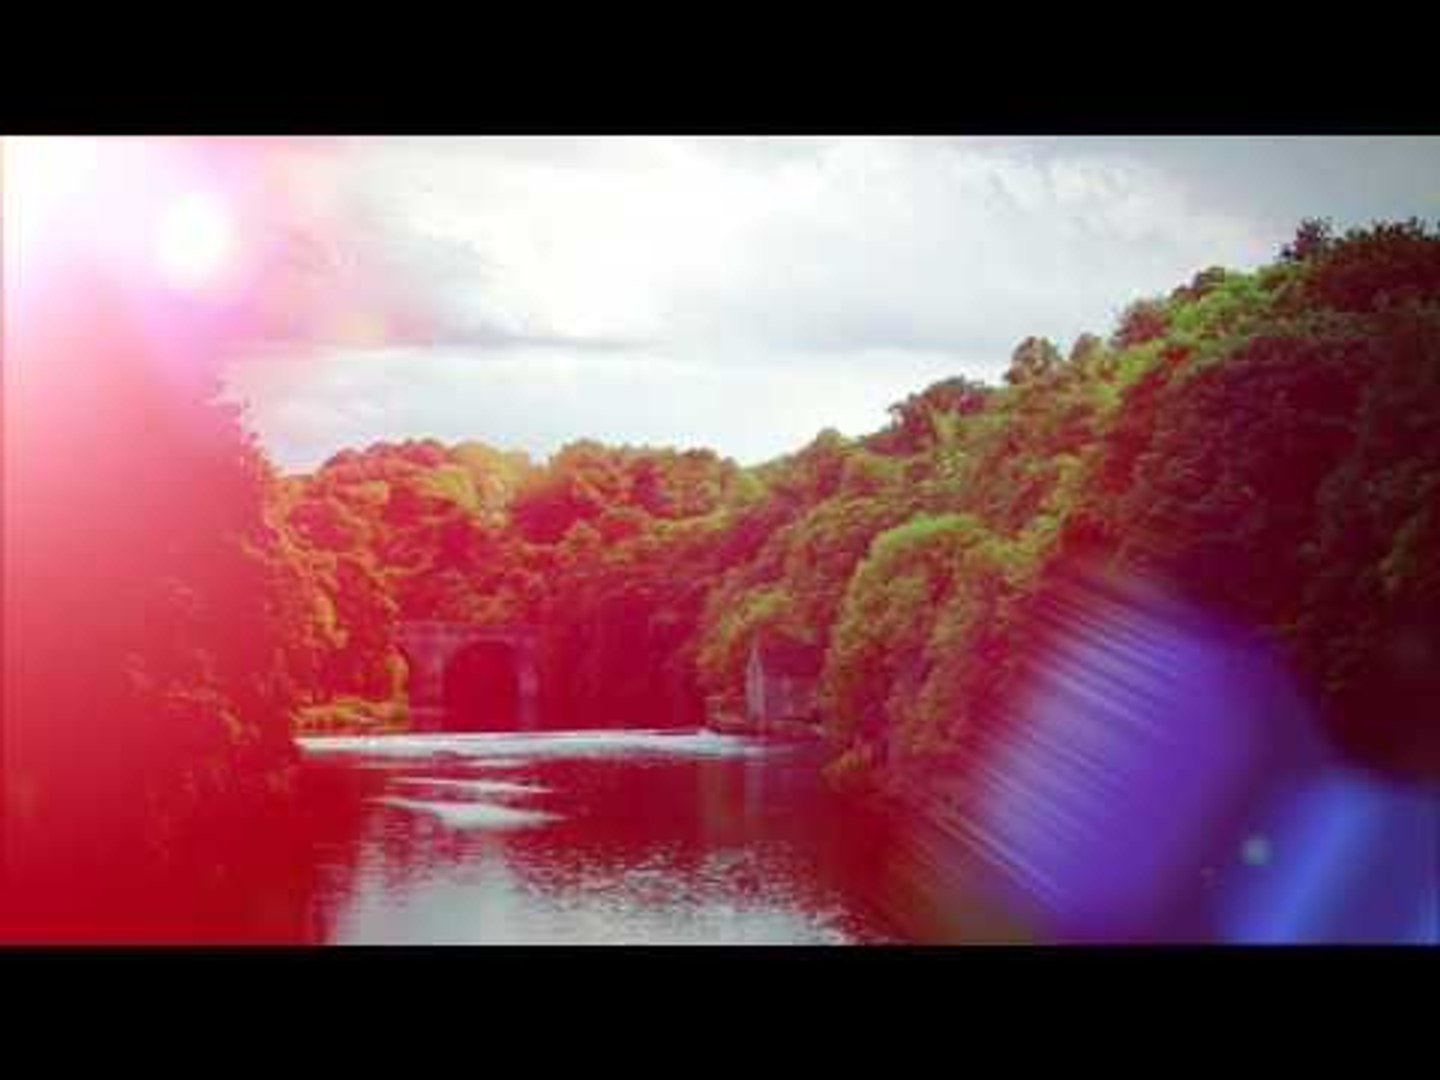 Relaxing Music: With Nature Sounds, Soothing Relaxing Waterfall Music, Study, Meditation,Sleep Music